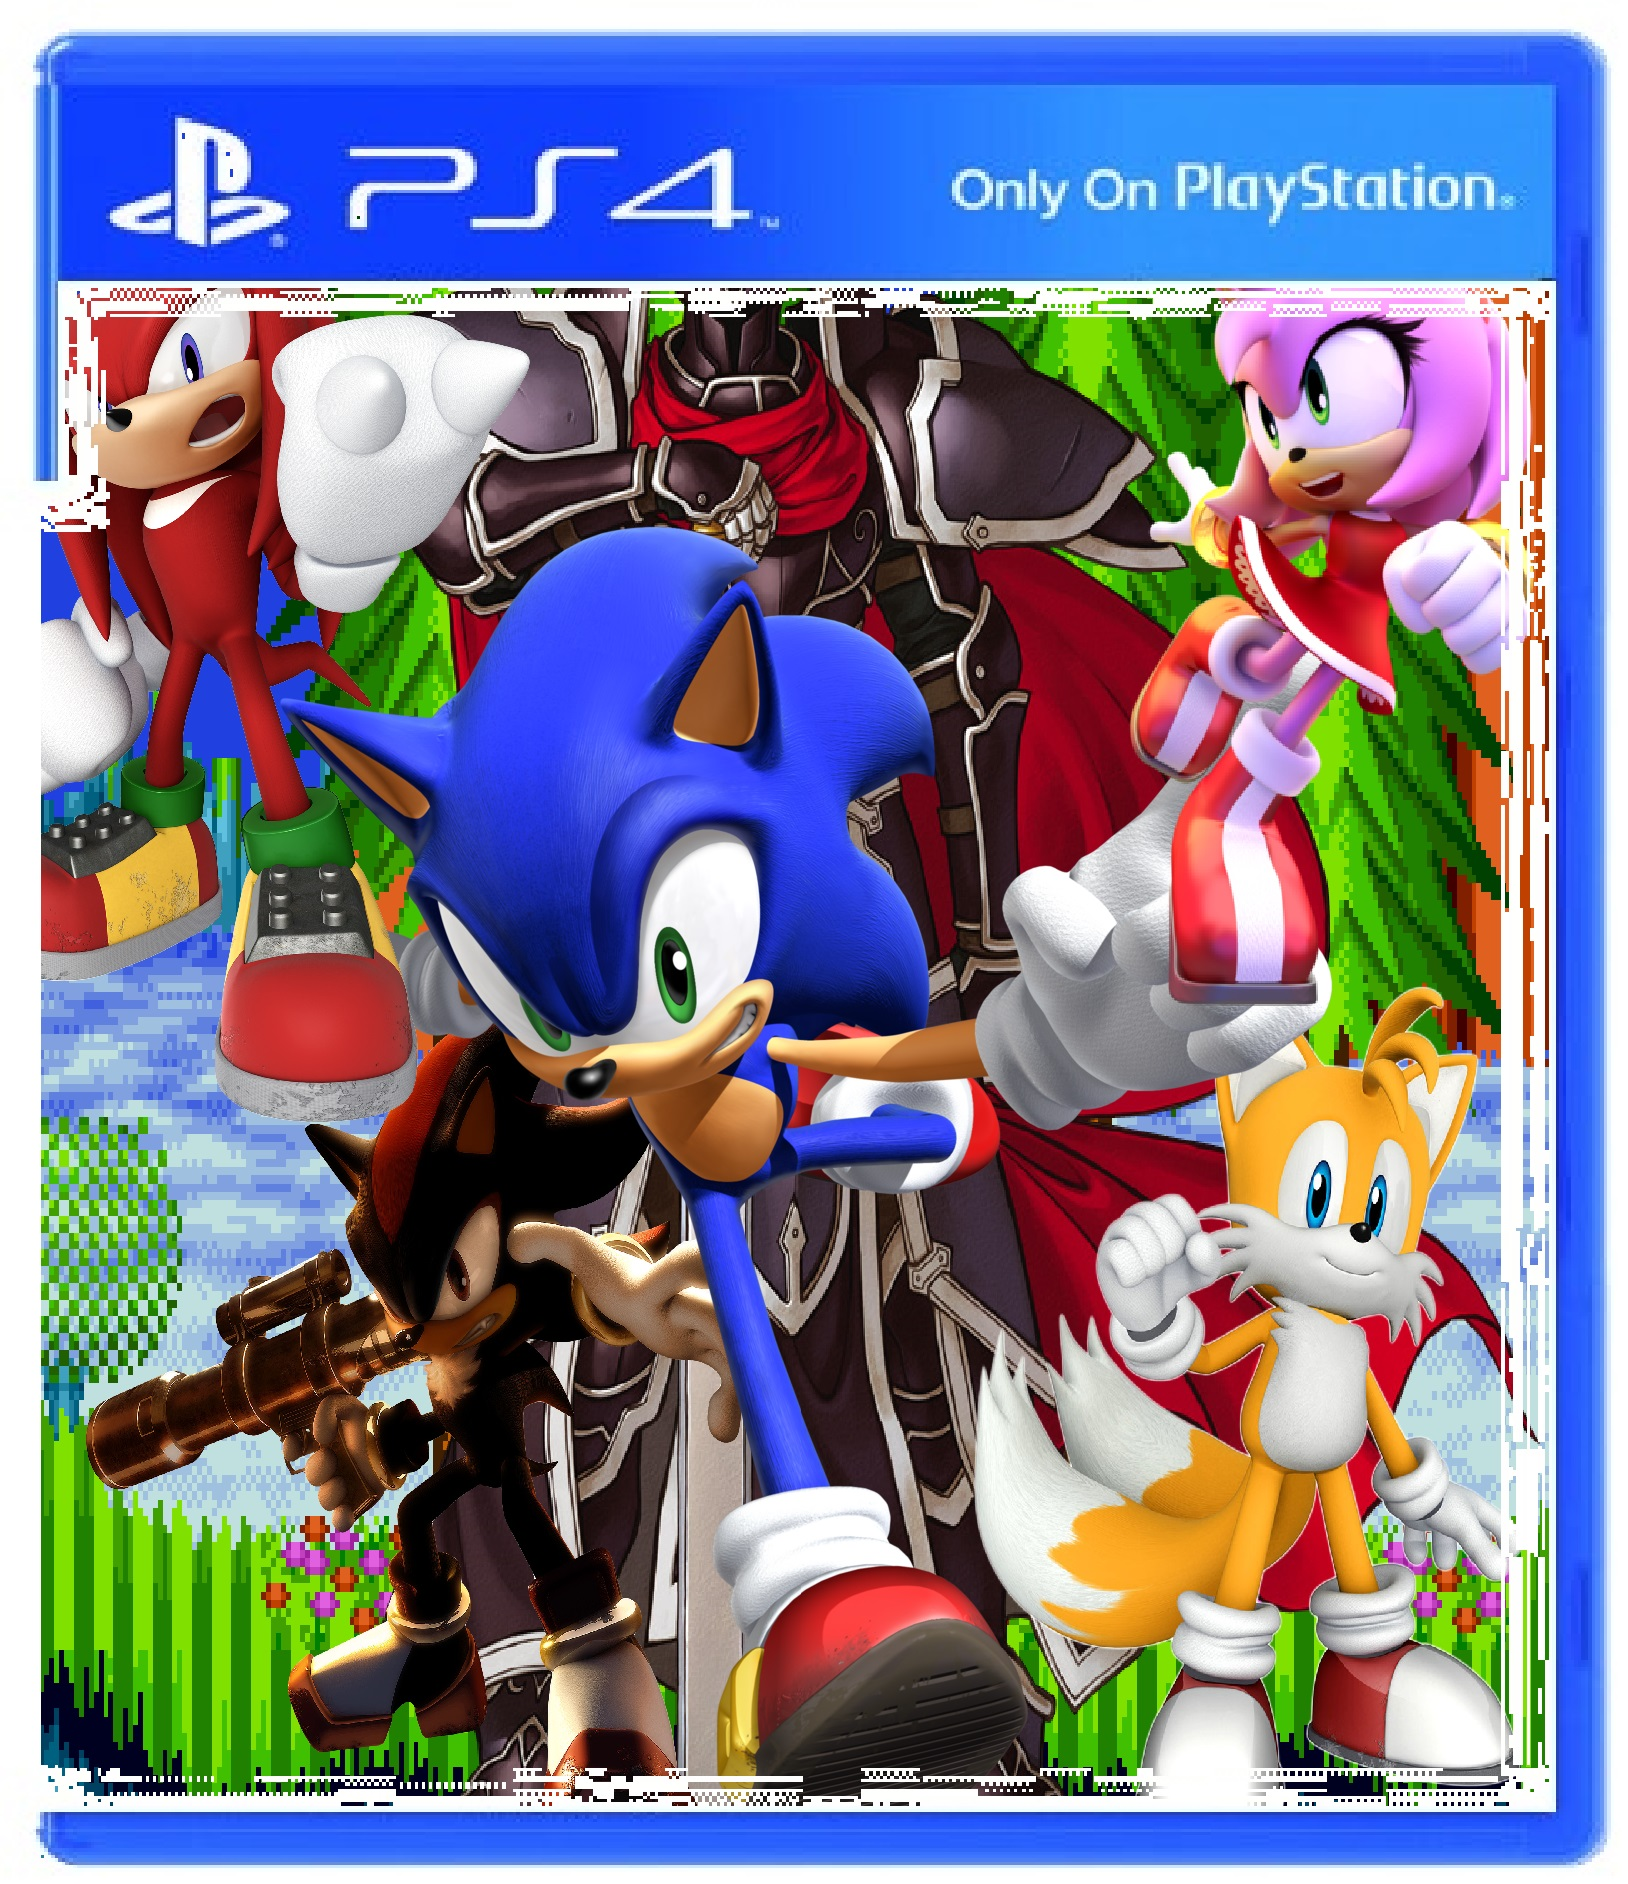 New Sonic Game For Ps4 : Image super sonic hd collection on ps eg idea wiki